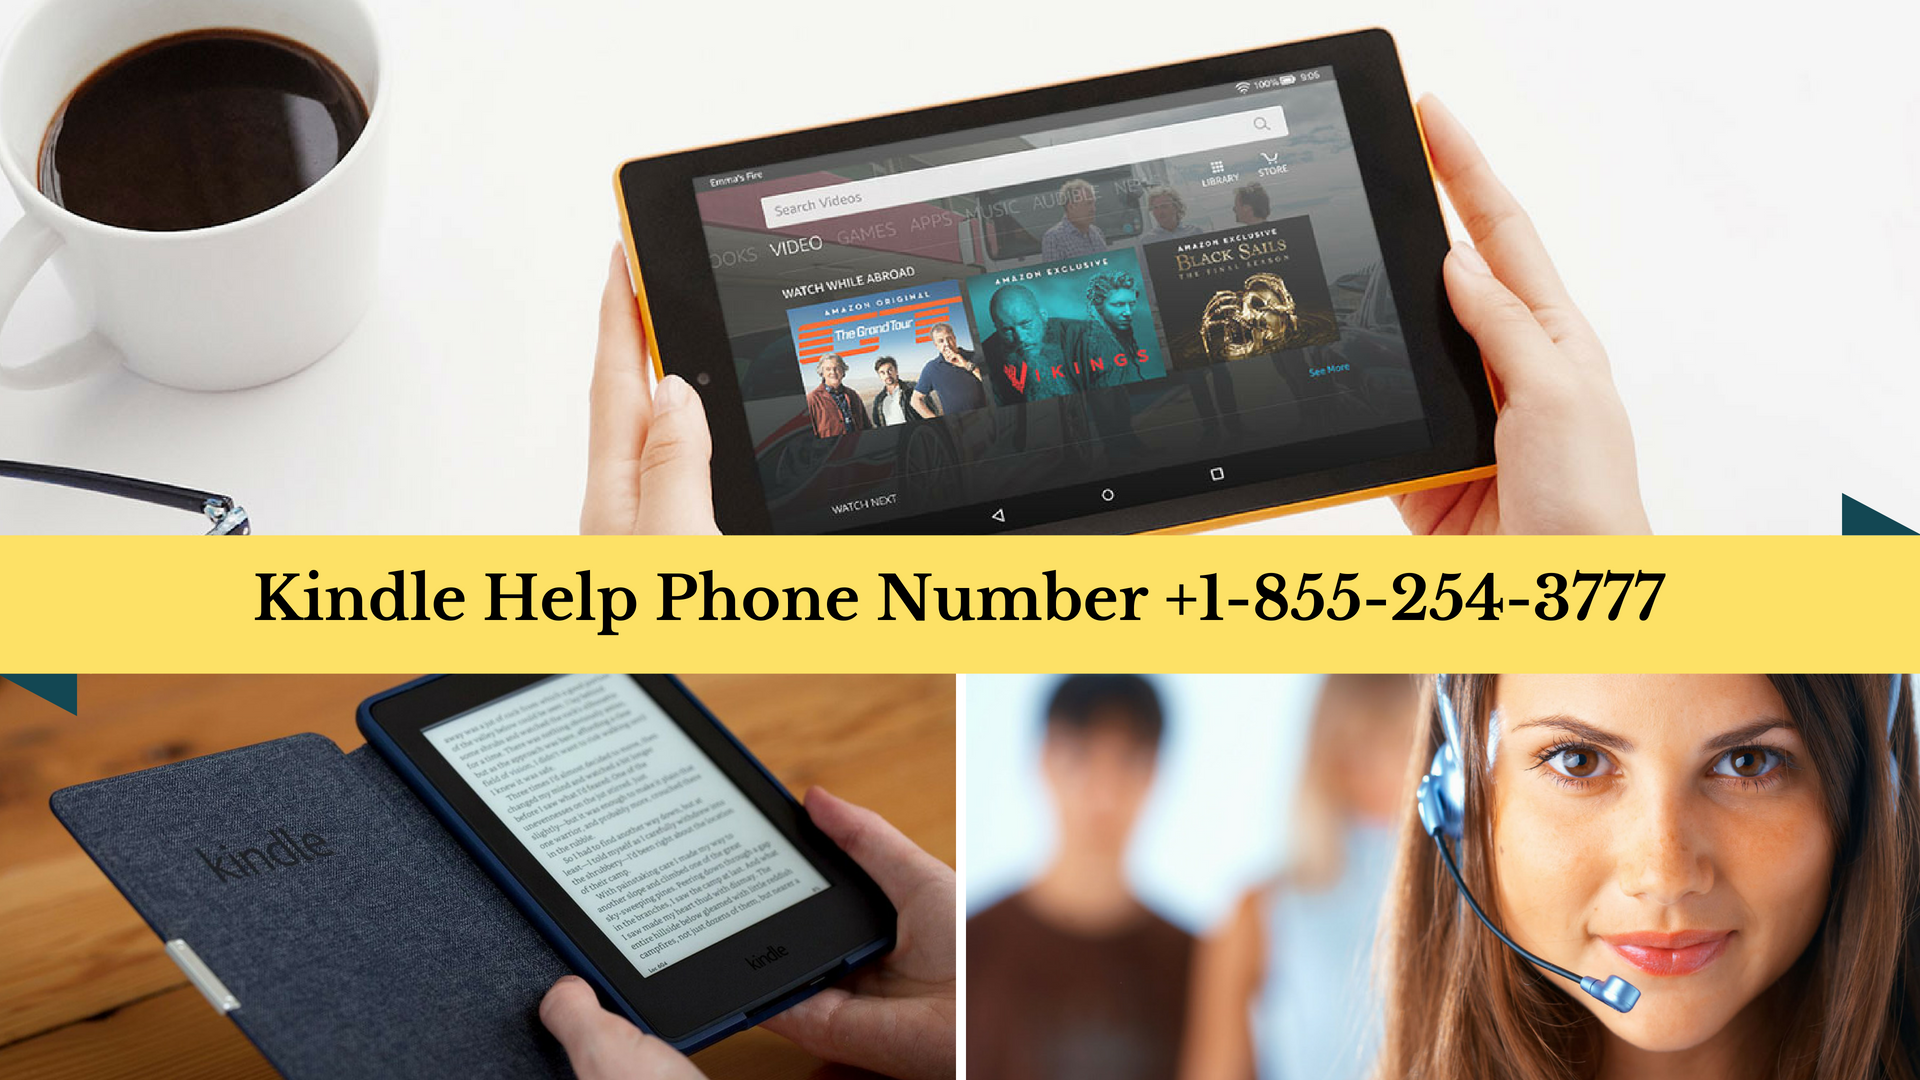 Get Instant technical support on All Kindle related issues With our Kindle help technical support team instantly.Our Kindle technical support will assist you 24*7 Hour.  #KindleHelp #KindleHelpDesk #KindleSupportUSA #AmazonKindleSupportNumber #KindleSupportNumber #KindleSupport #KindleTechnicalSupport #KindleTechSupportNumber #KindleTechnicalSupportNumber